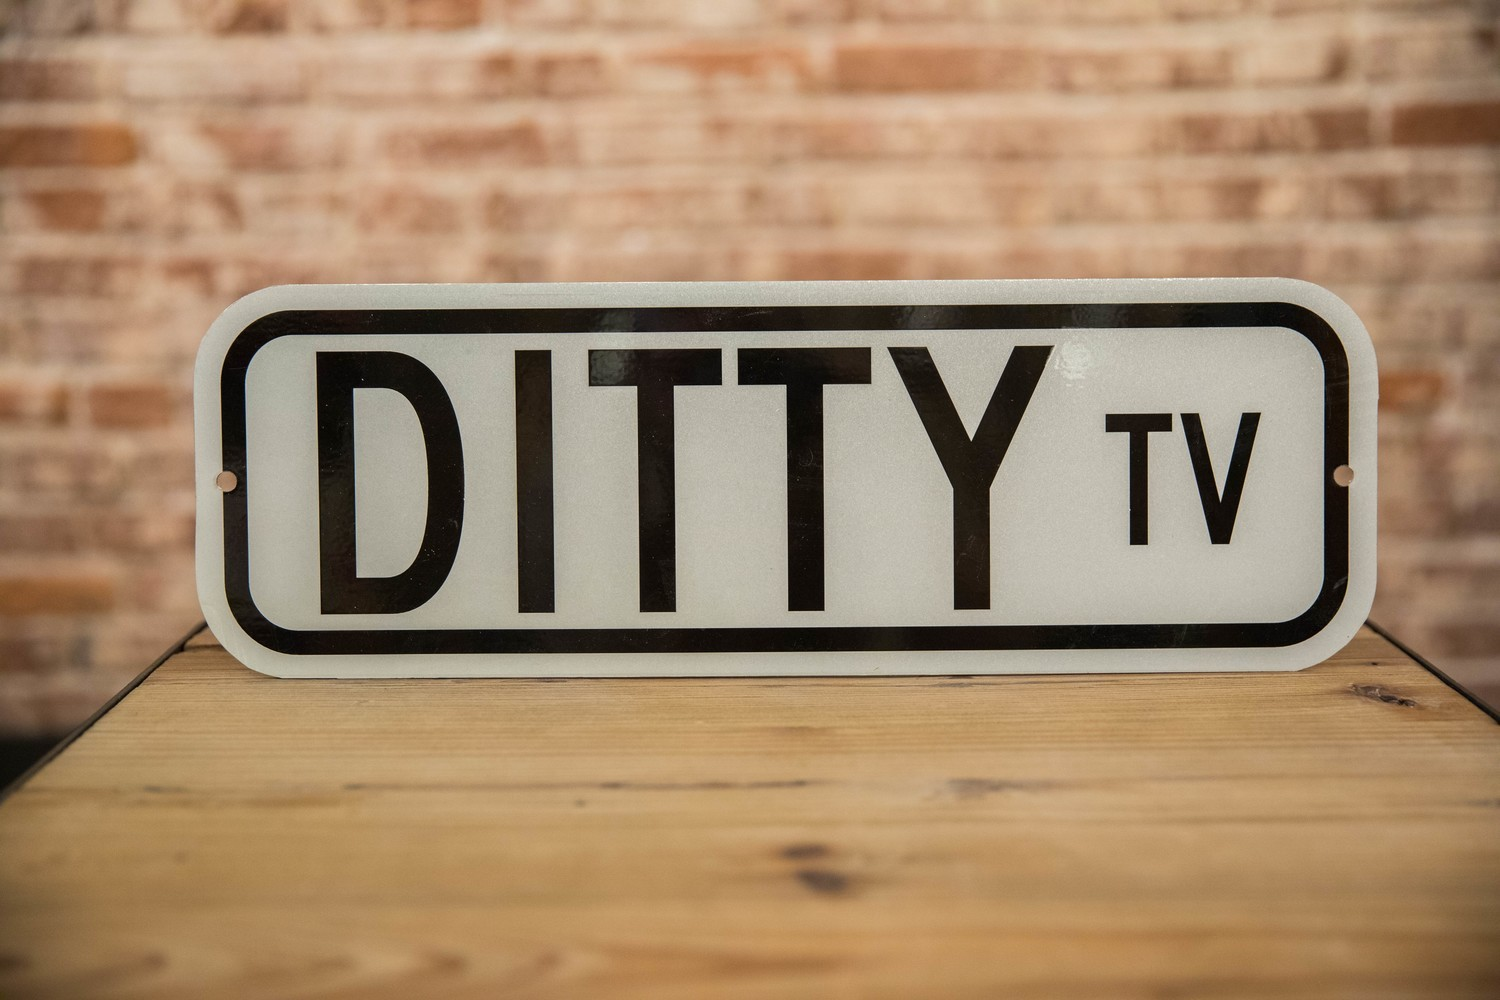 DittyTV Road Sign